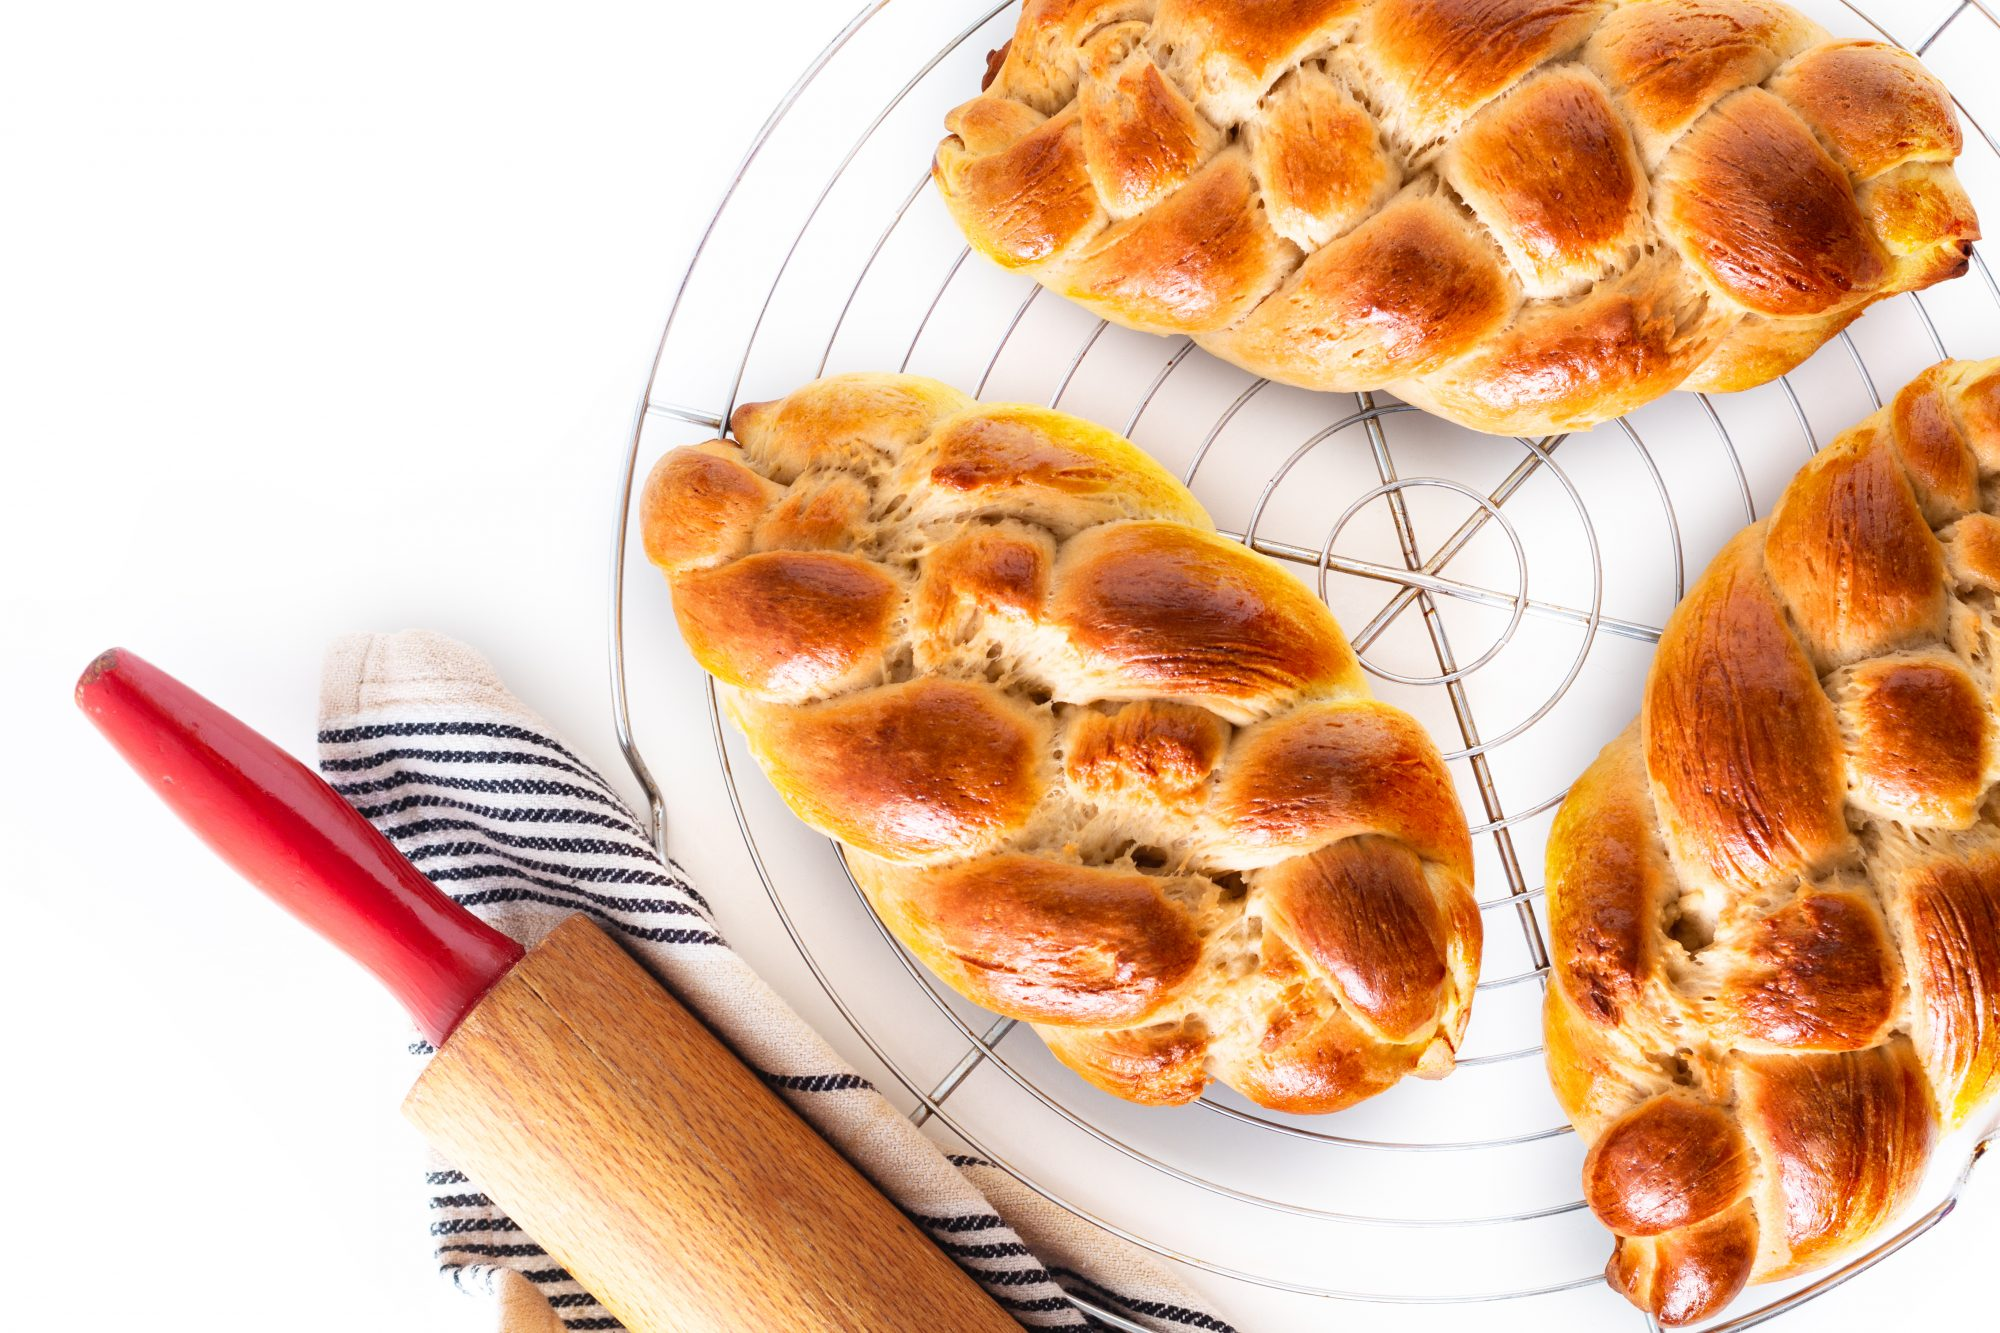 braided-bread-1163900800.jpg